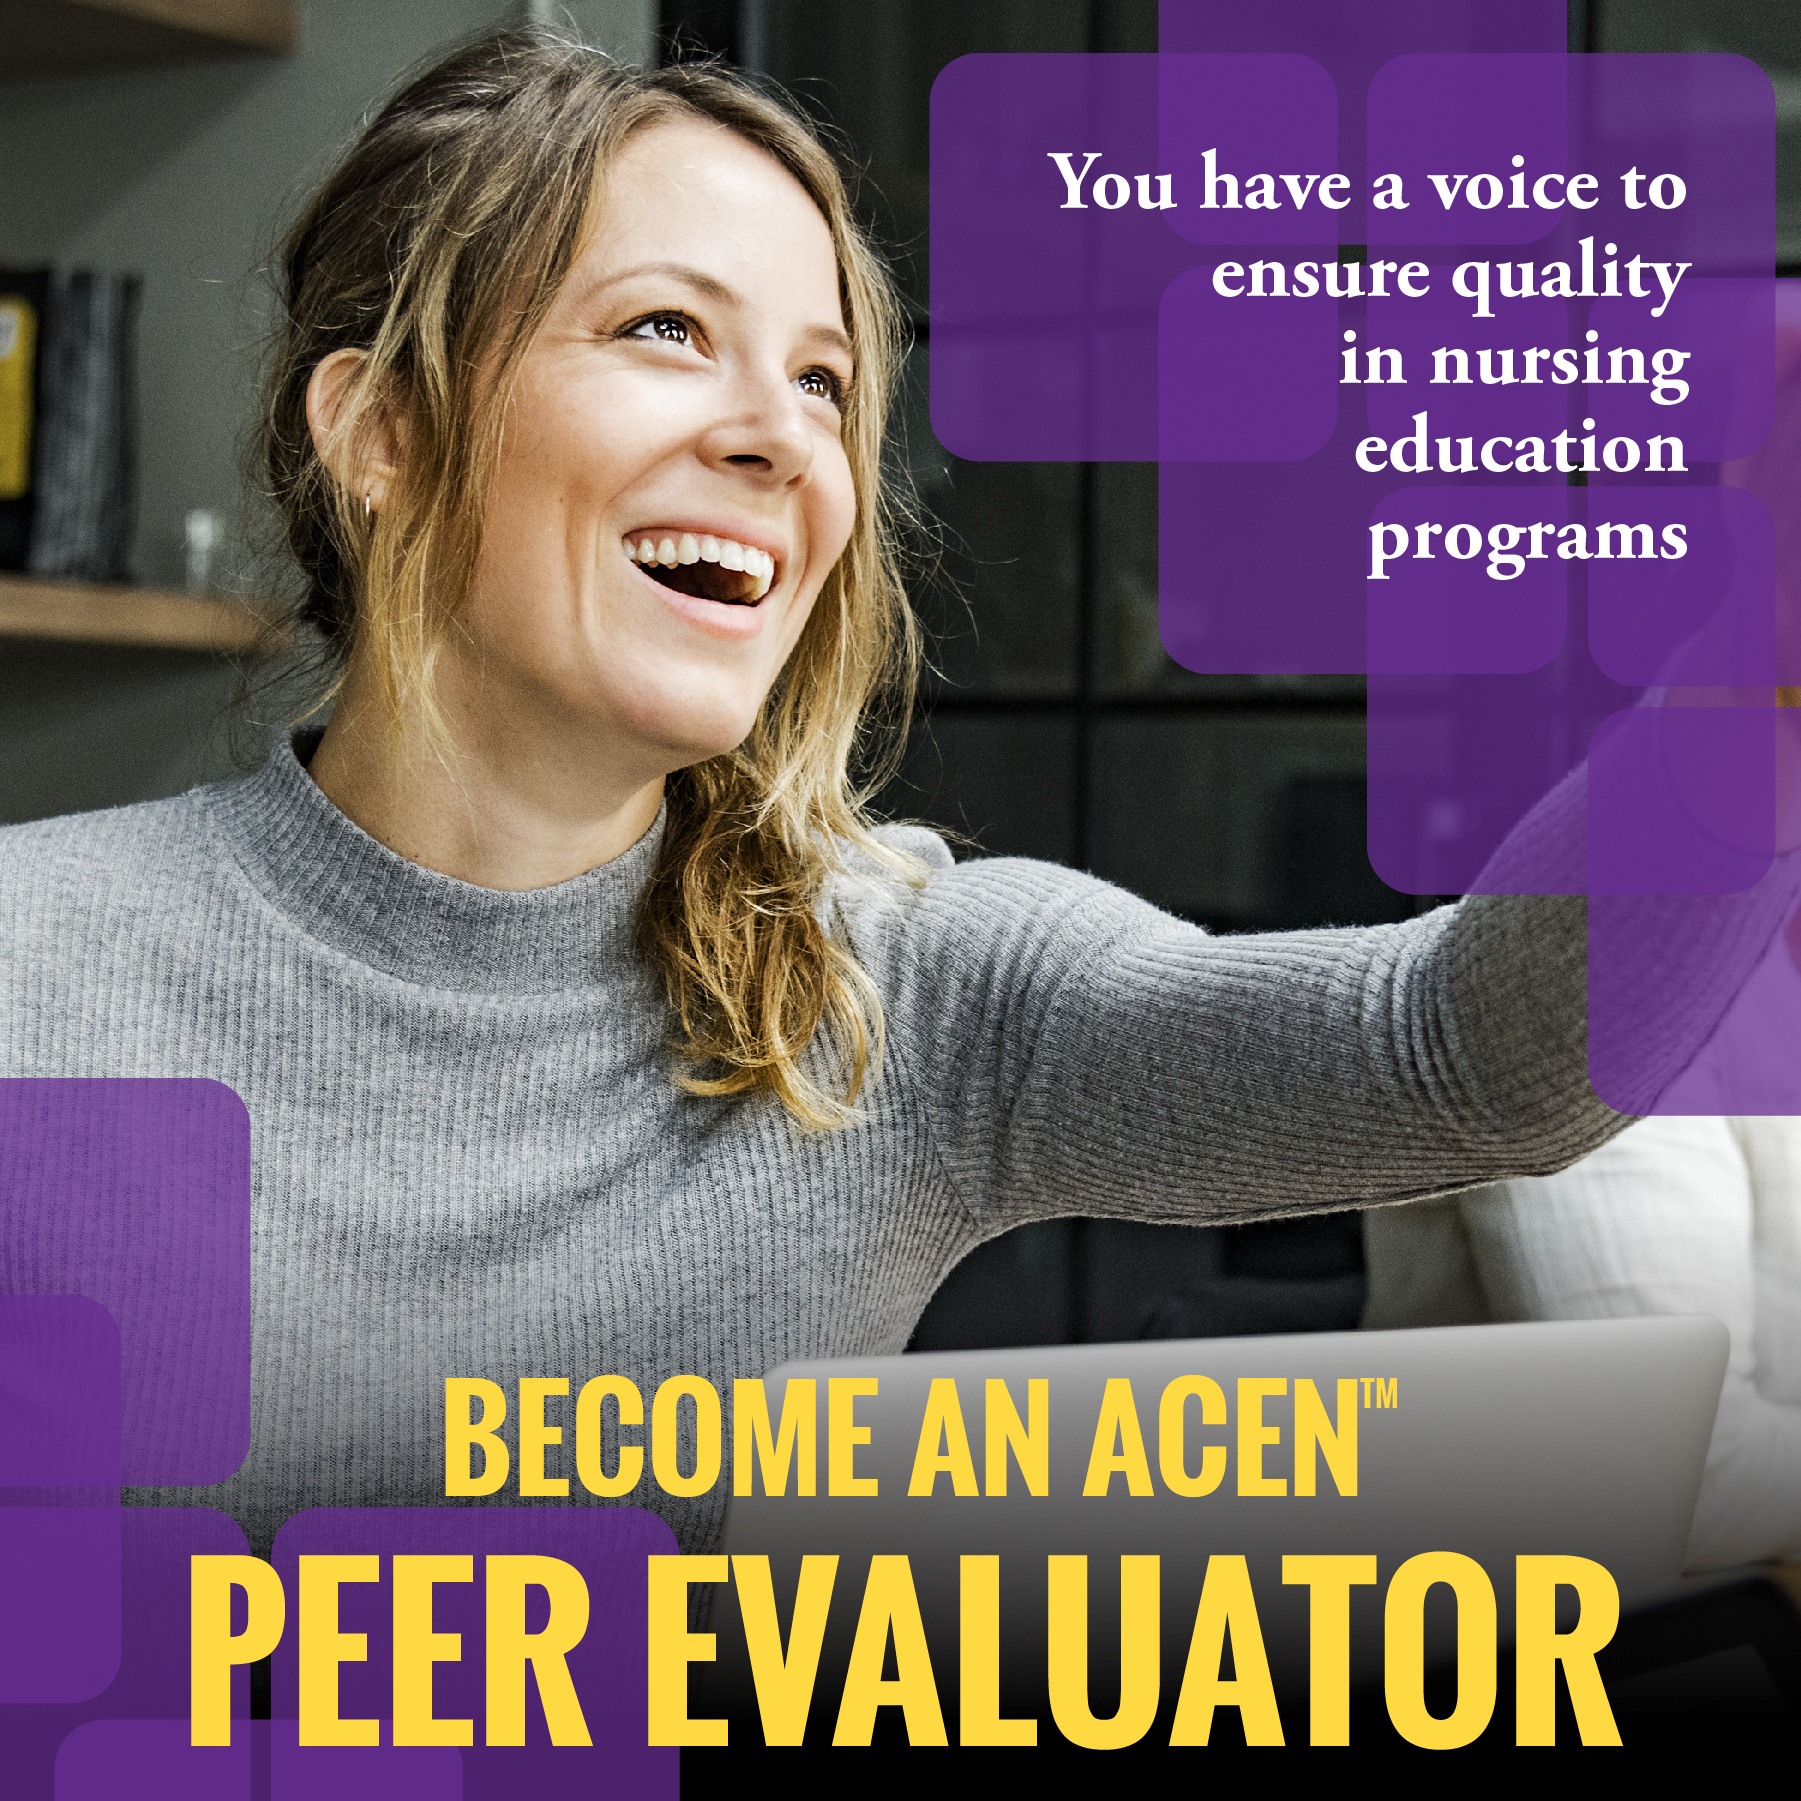 You have a voice: Become an ACEN Peer Evaluator